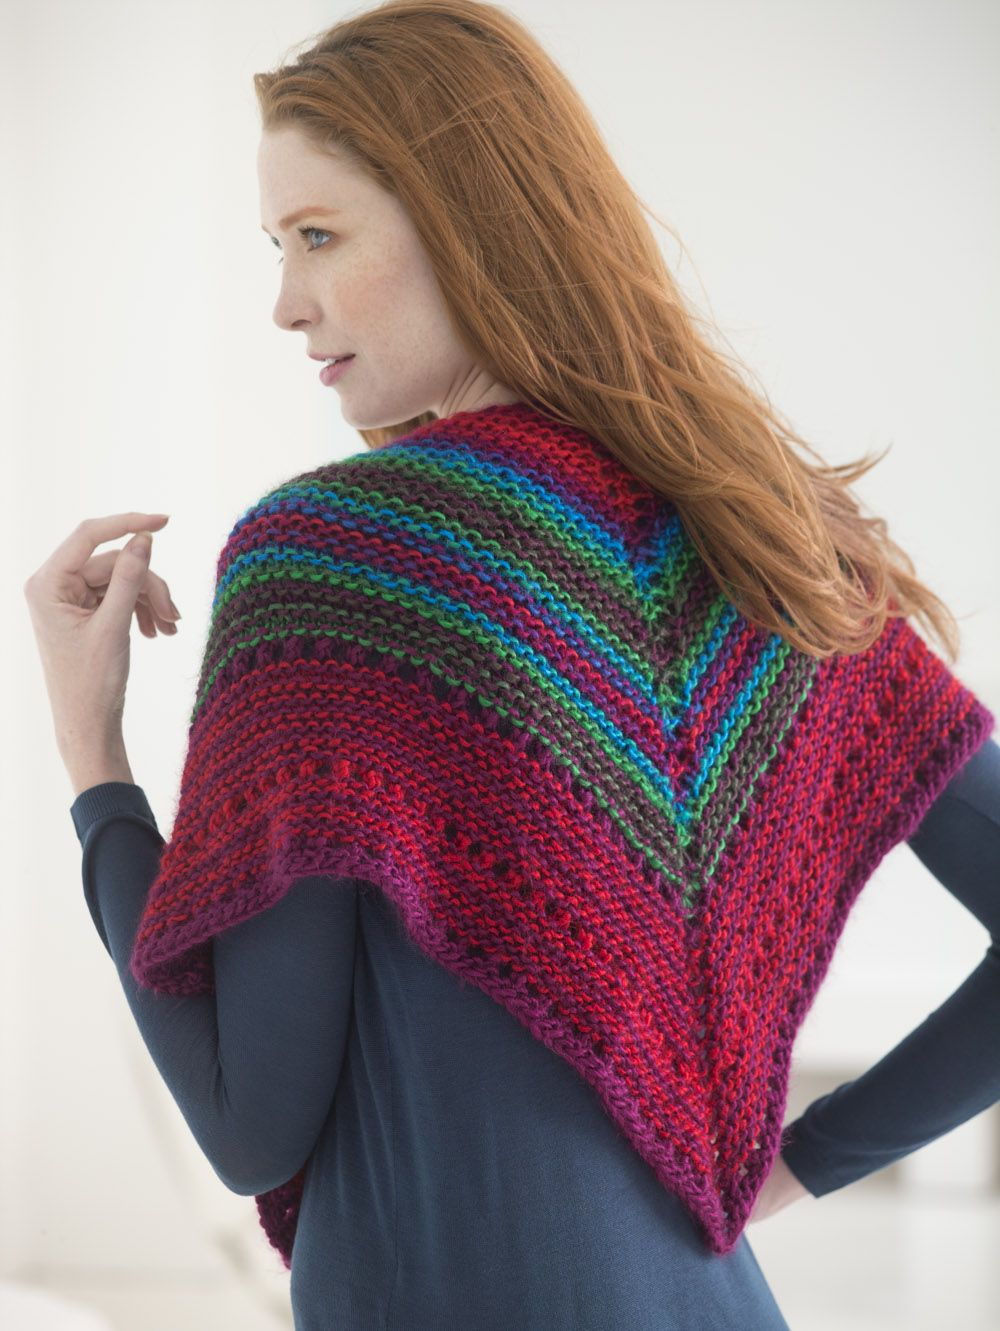 Knit this gorgeous wrap with lion brand landscapes free pattern penobscot shawl free knitting pattern from lion brand using their landscapes yarn bankloansurffo Gallery